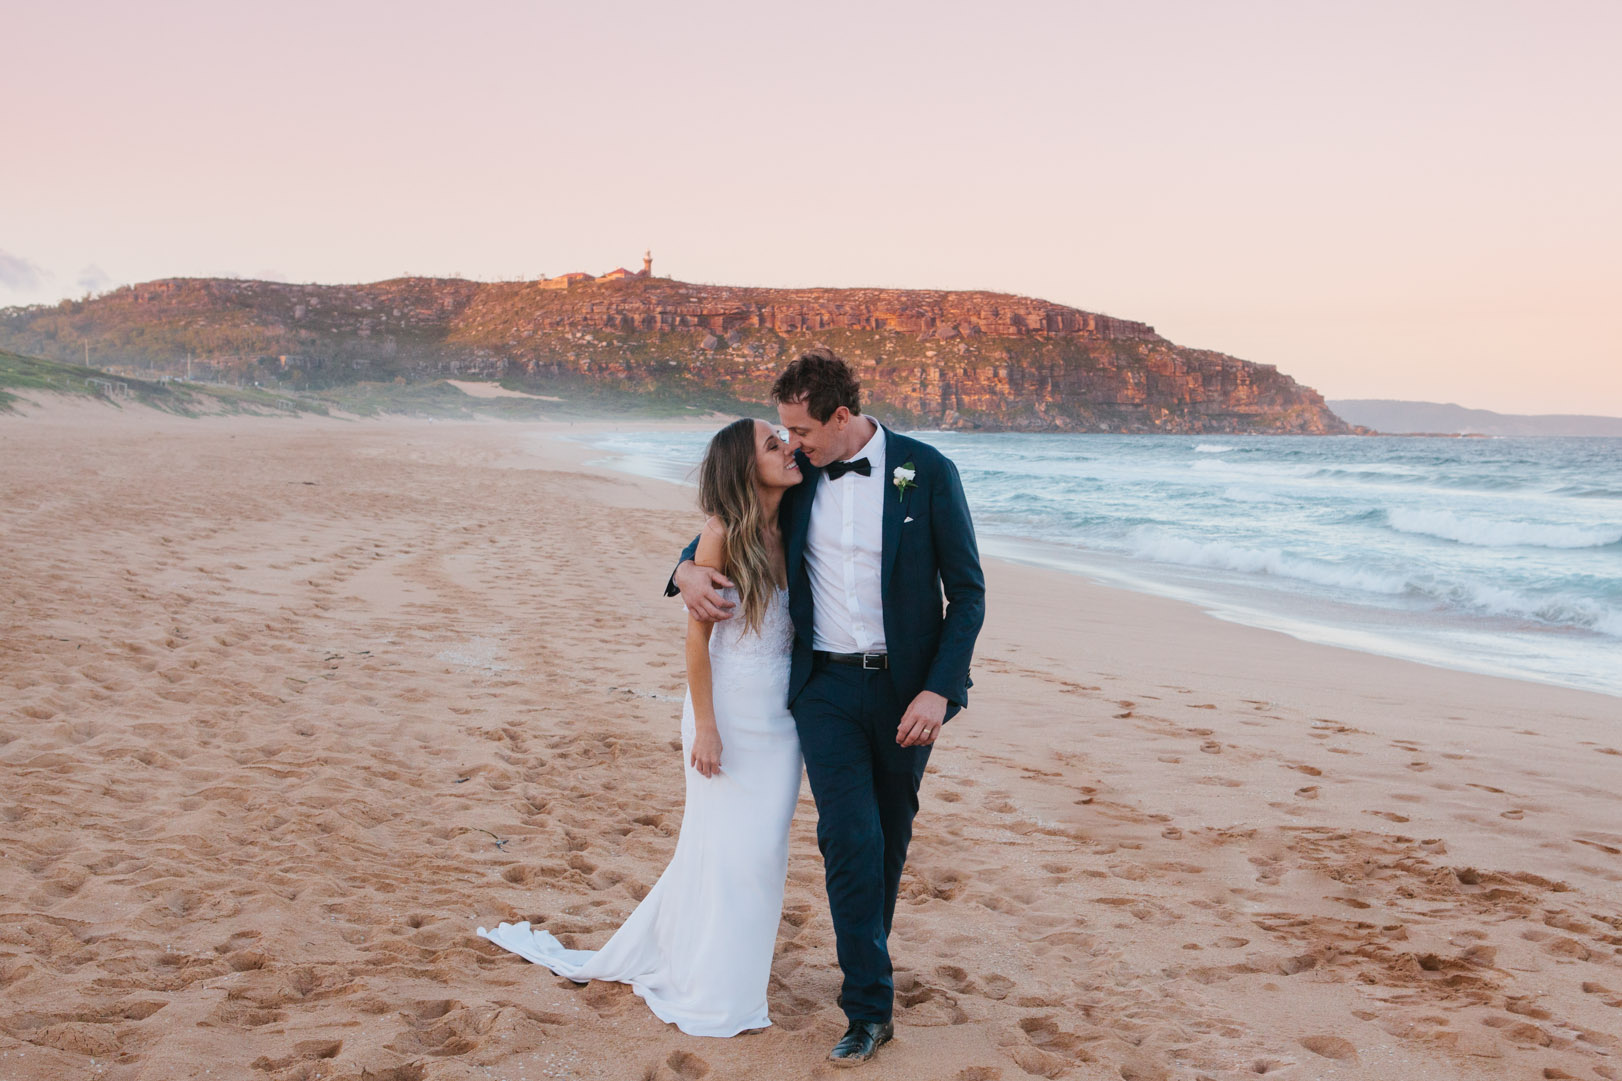 ADAM & SARAH - PALM BEACH, NSW